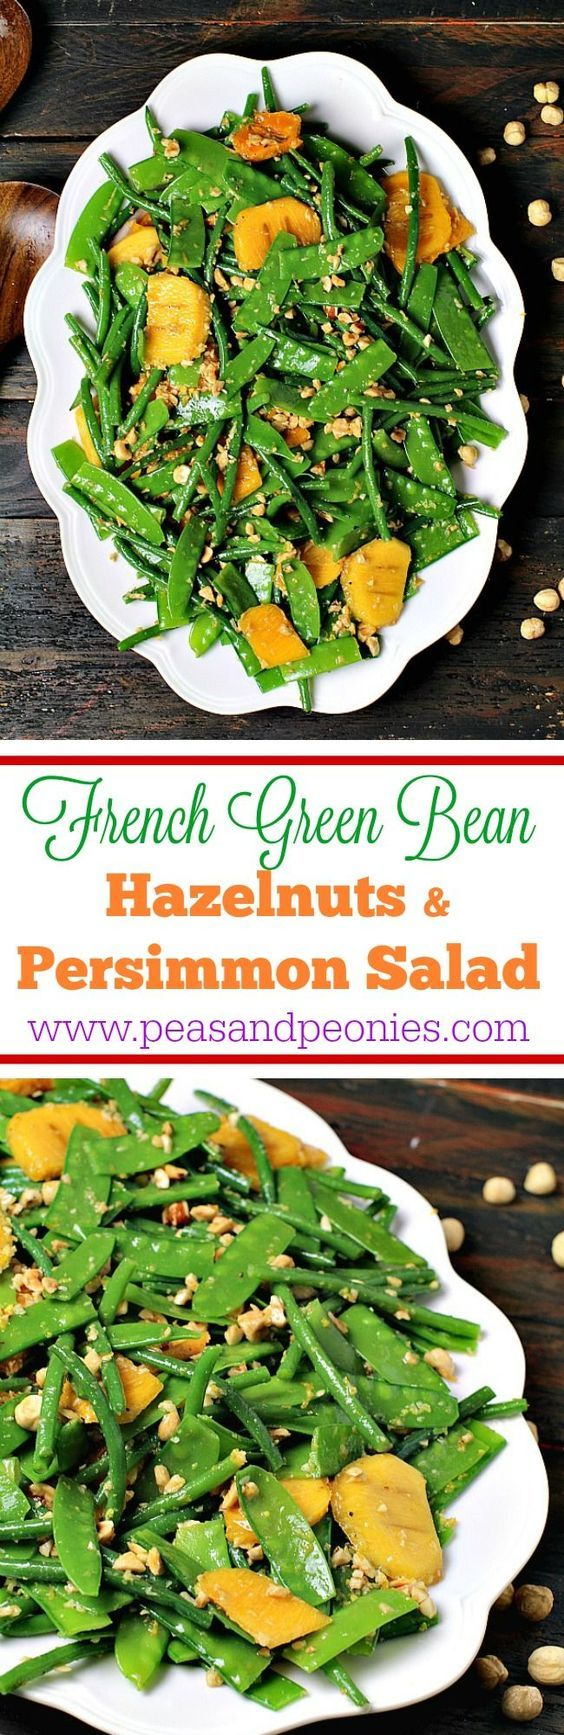 French Green Bean Salad with Persimmon & Hazelnuts - Peas and Peonies: